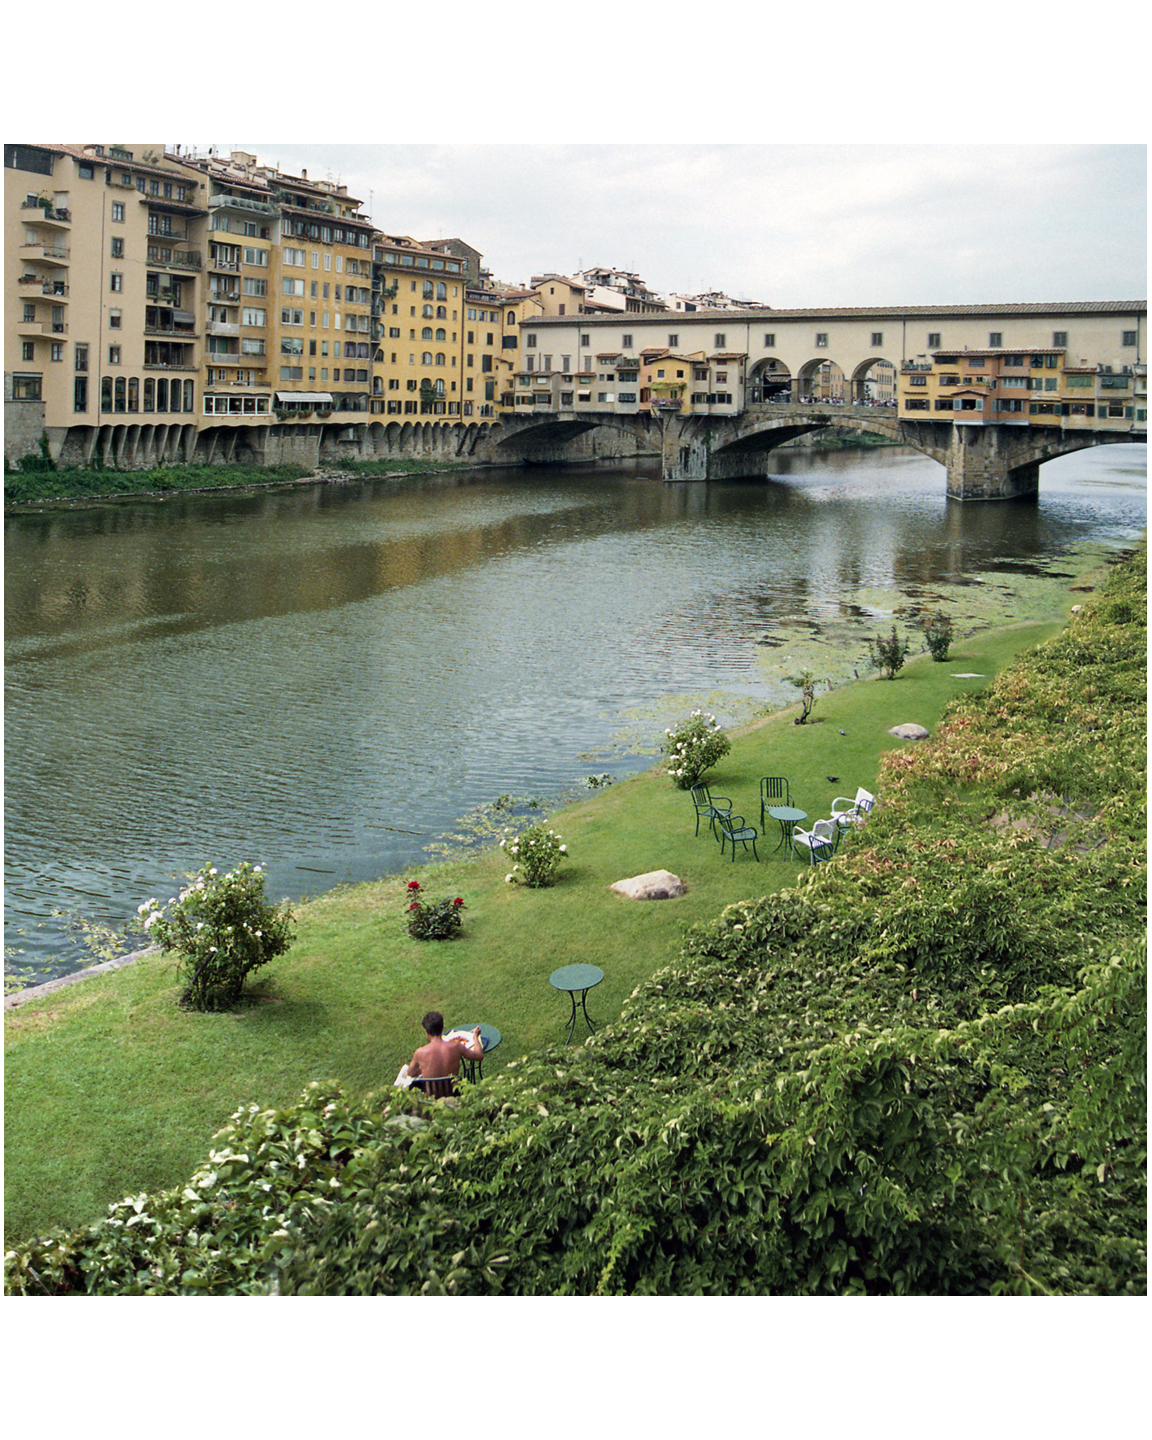 Afternoon at the Ponte Veccio - Florence, Italy